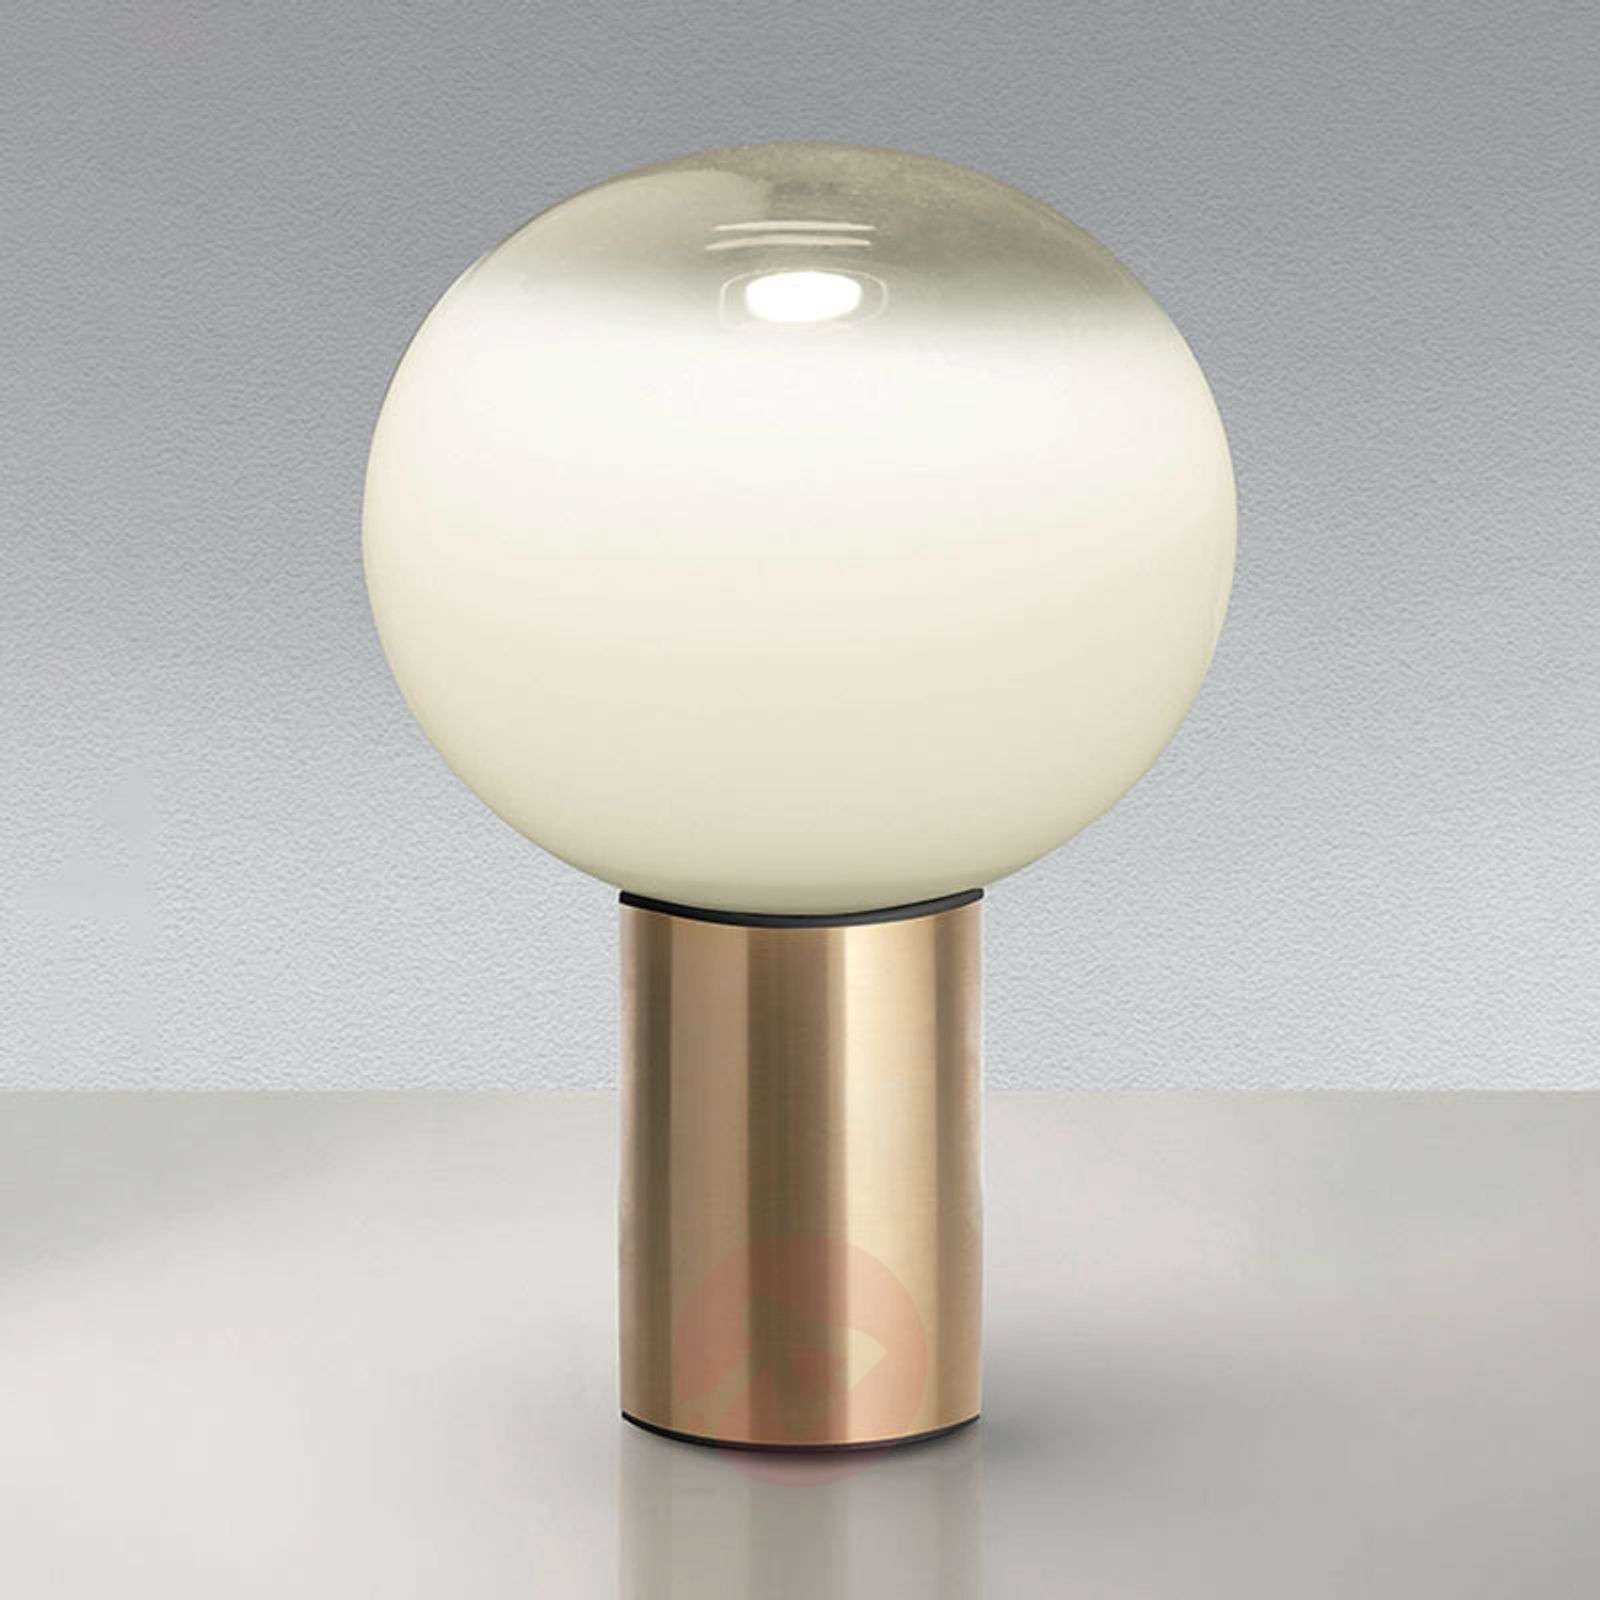 Artemide Laguna 16 table lamp-1060172X-01